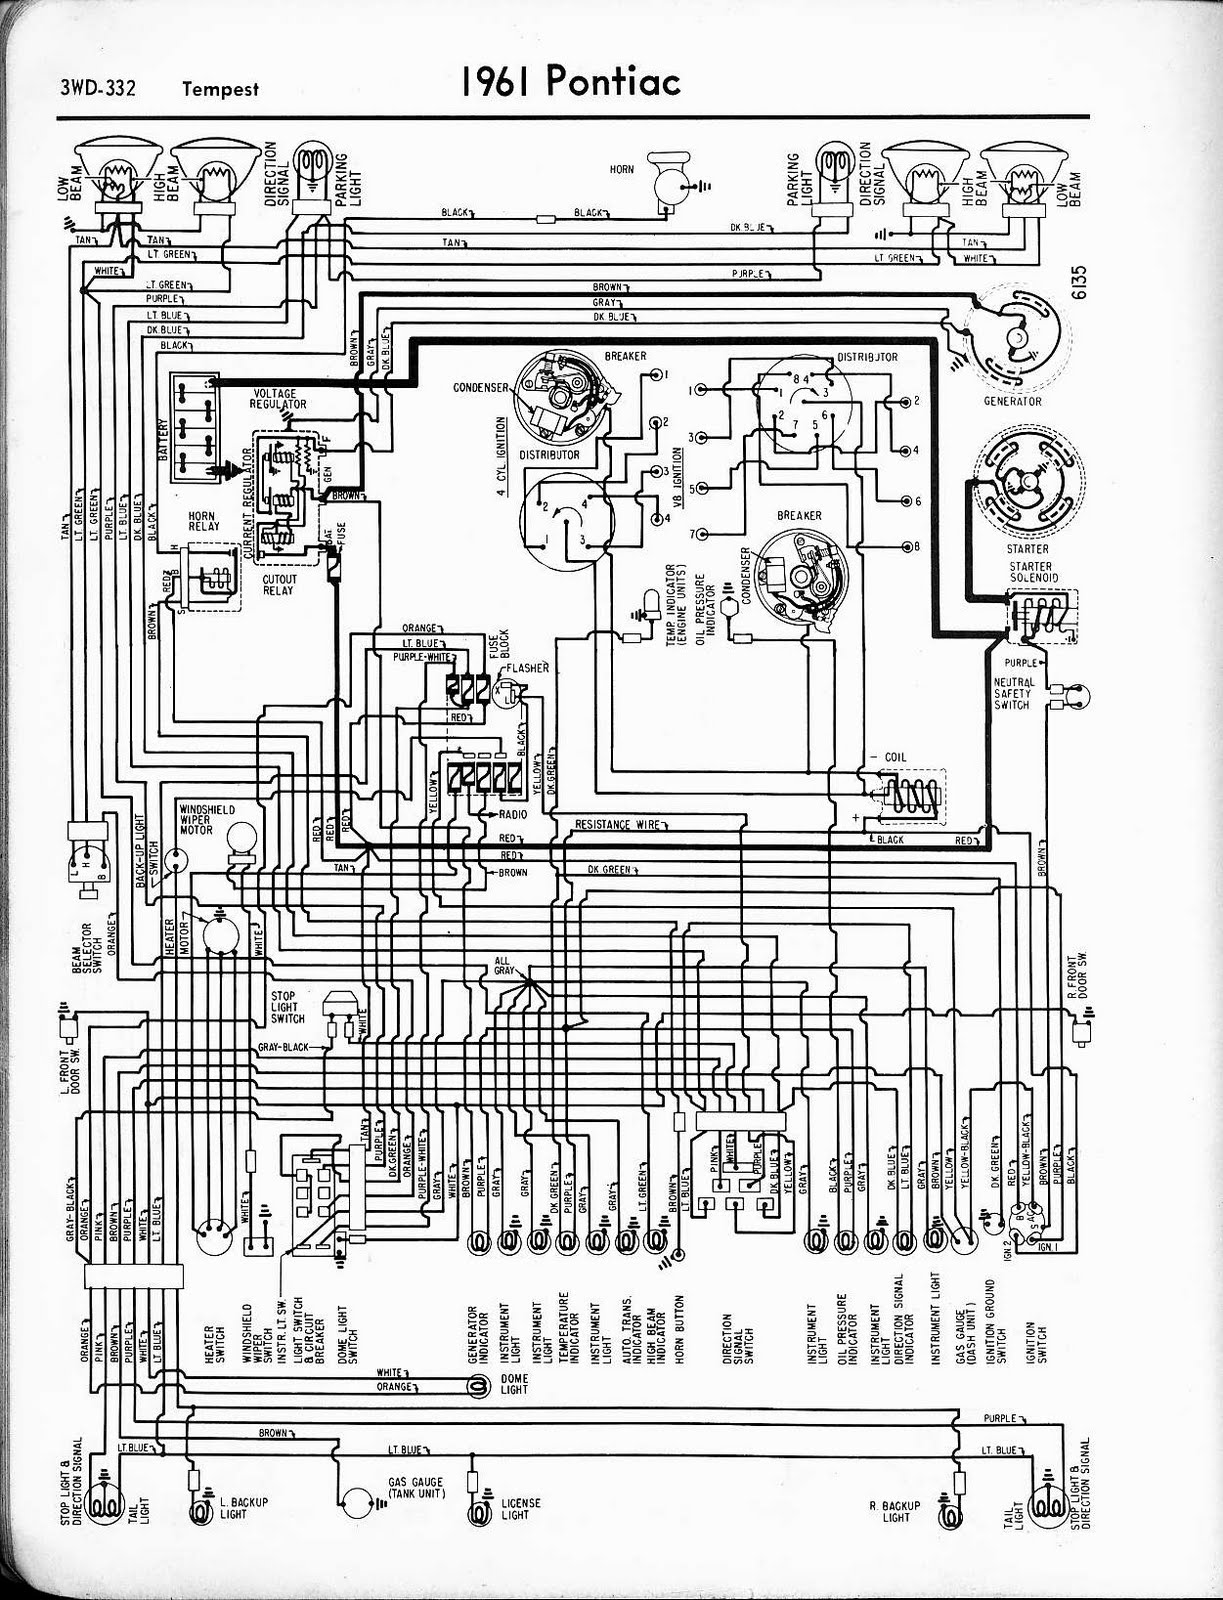 Free Auto Wiring Diagram May